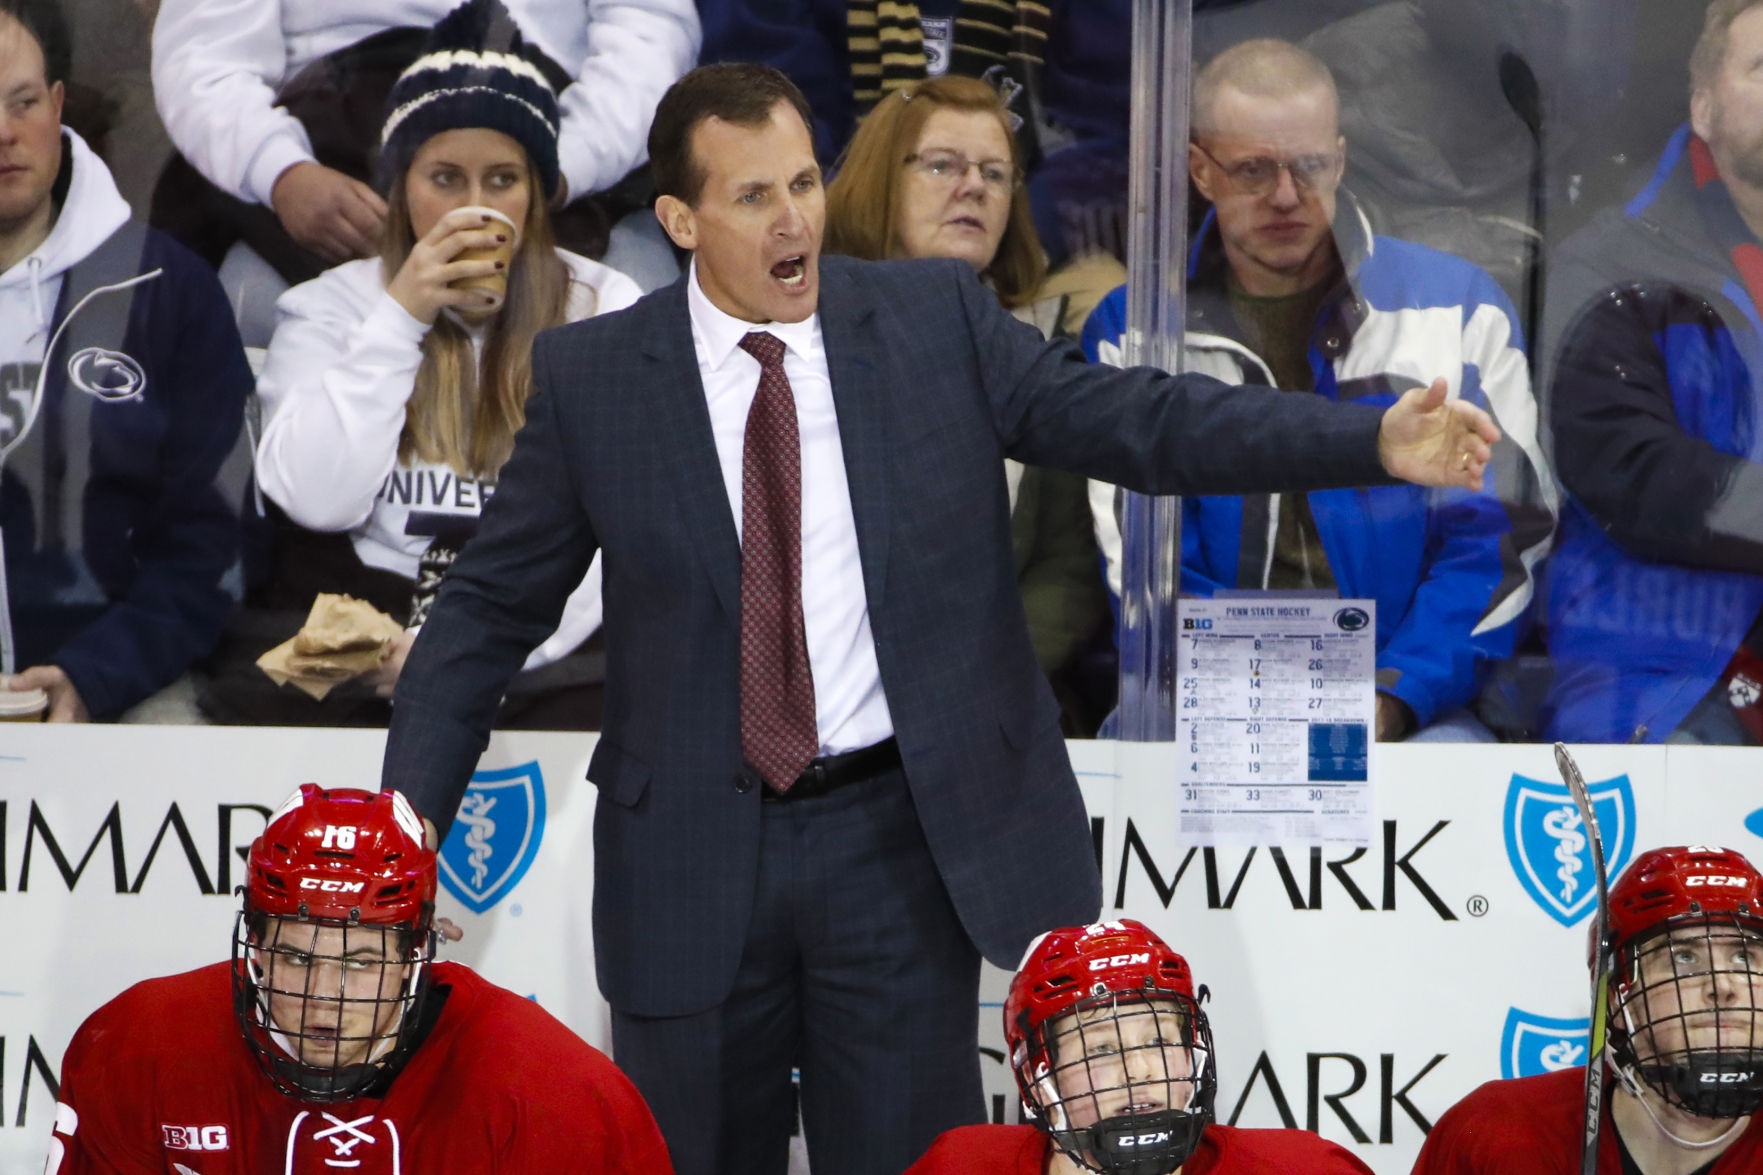 BIG10: Wisconsin Badgers Coach Tony Granato Returns To Chicago, Where A Hometown Team Once Made A Big Push For Him